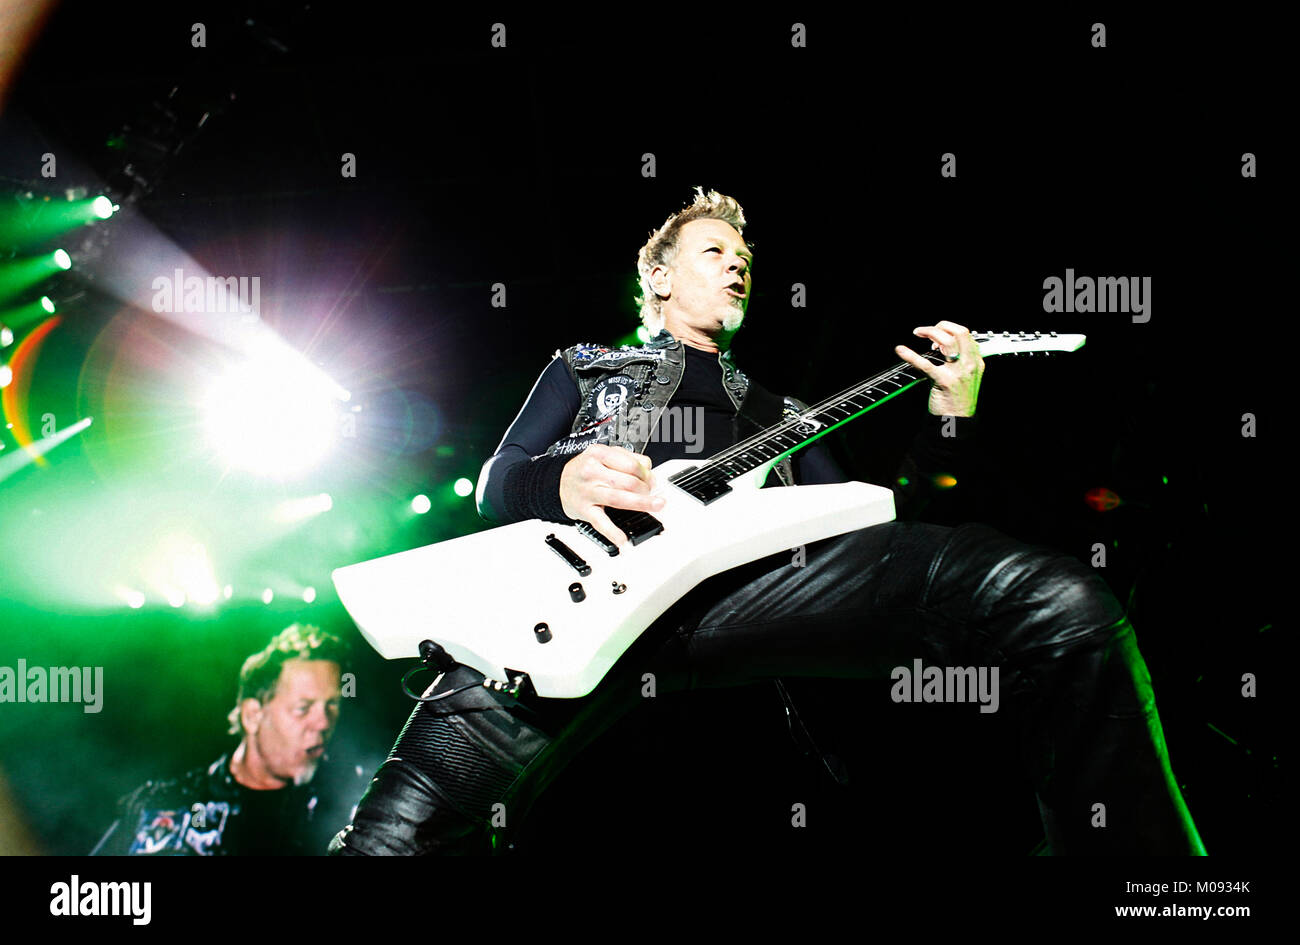 The American heavy metal band Metallica performs a live